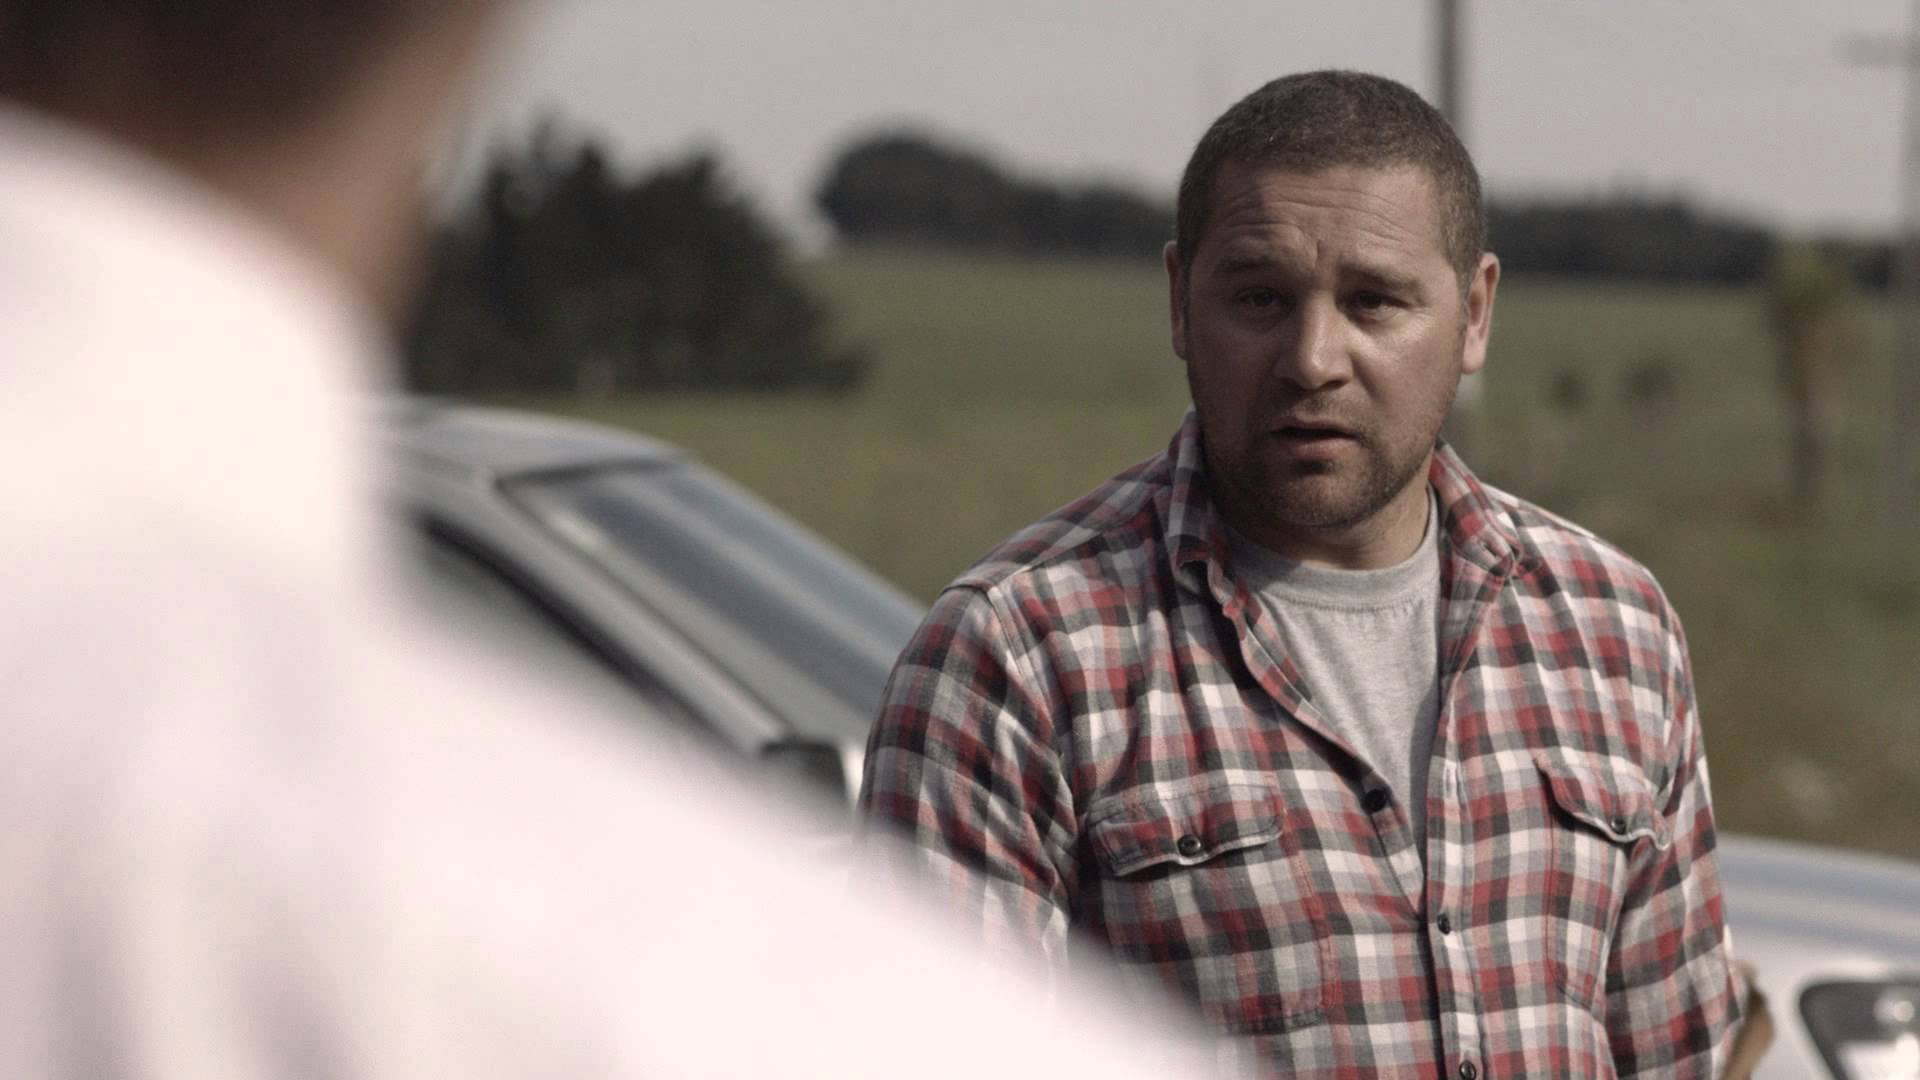 Powerful Driver Safety Ad Imagines a Conversation Between 2 Drivers in the Moments Before an Accident